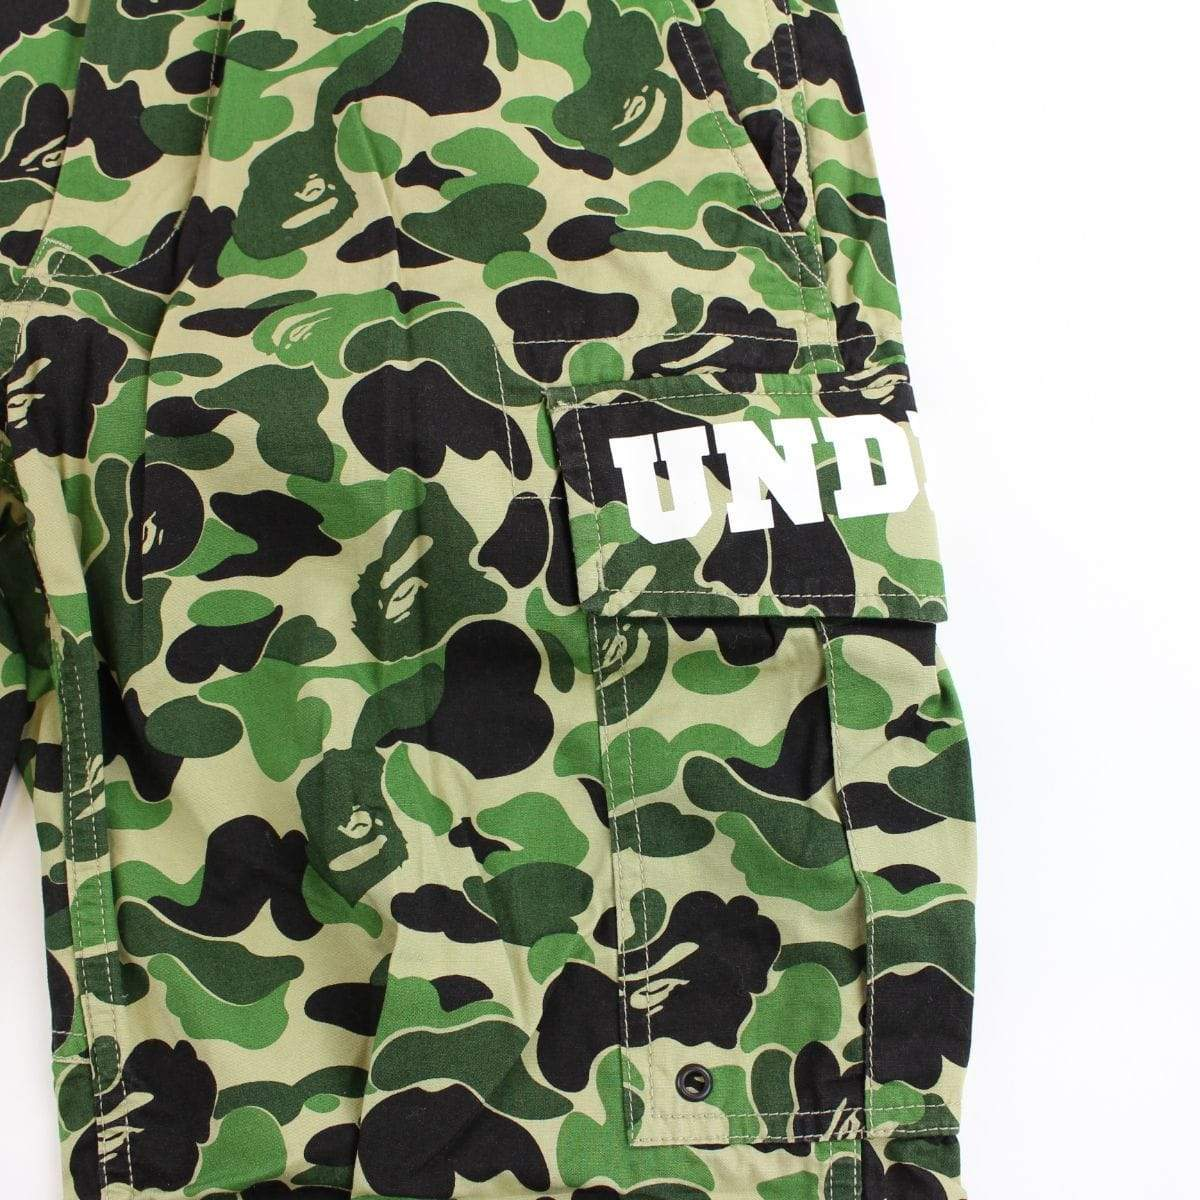 bape x undftd abc green camo pants - SaruGeneral